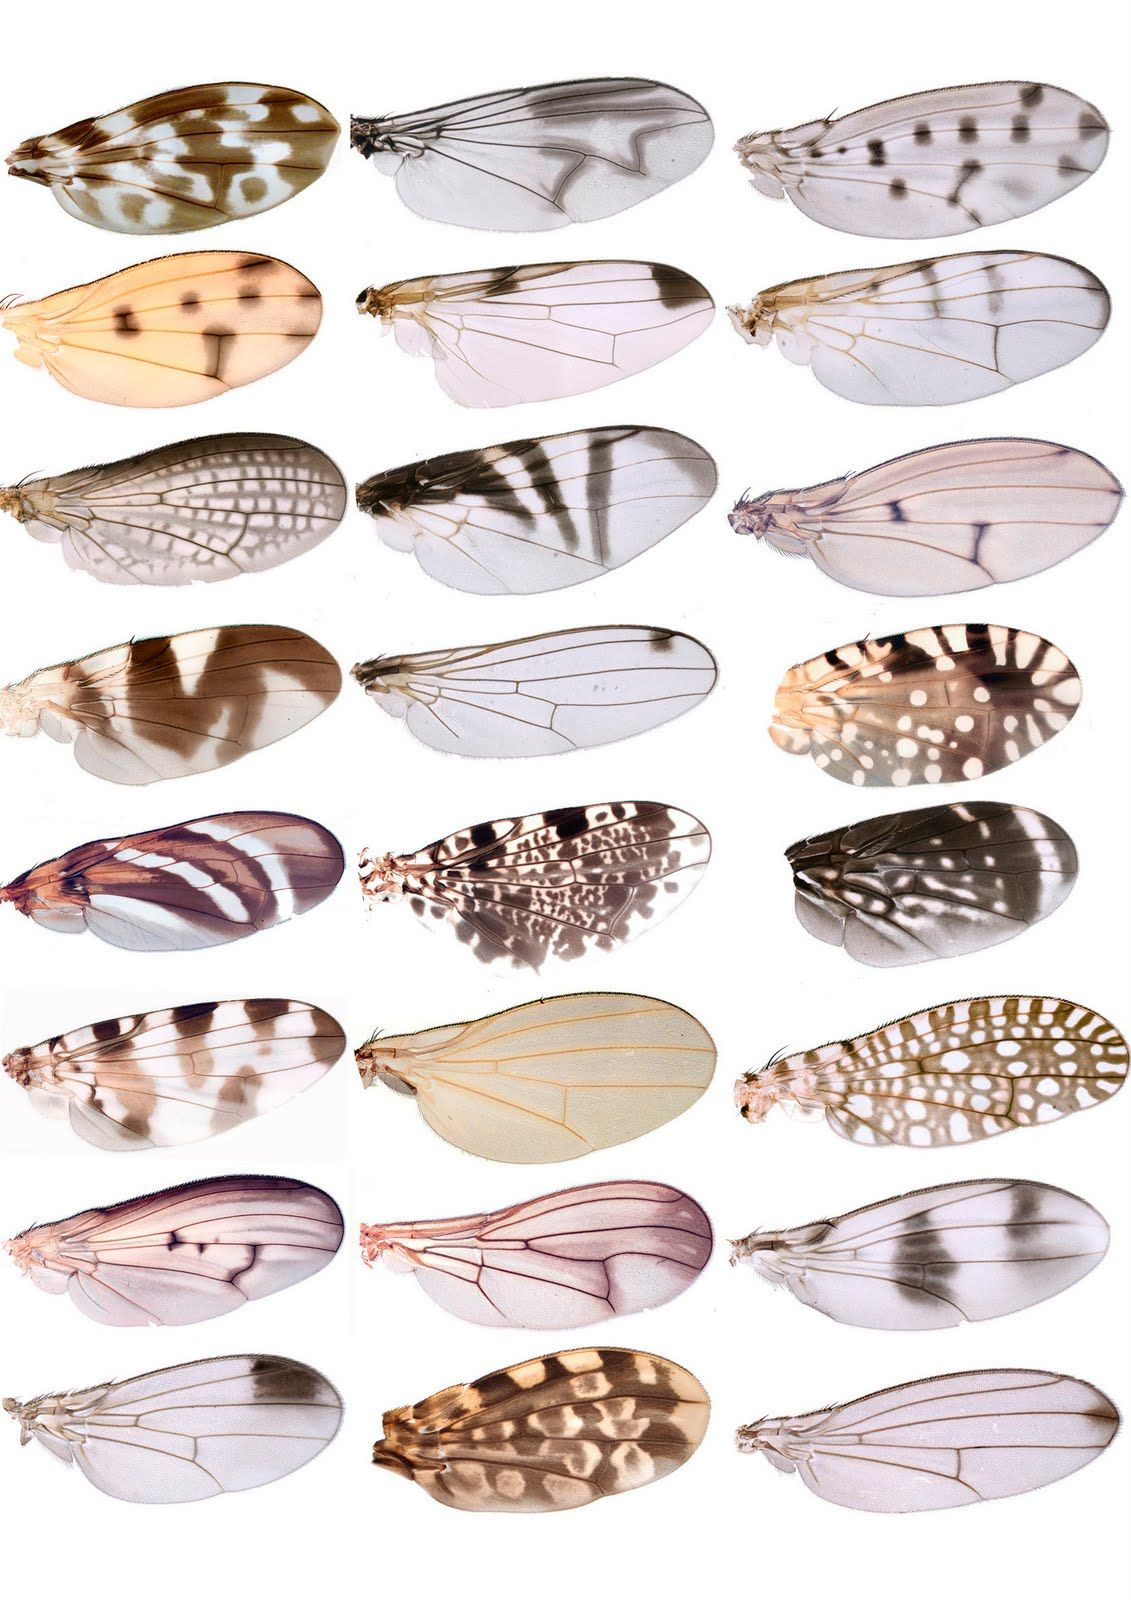 Alpines: INSECT WINGS | All that is fragile in life | Pinterest ...